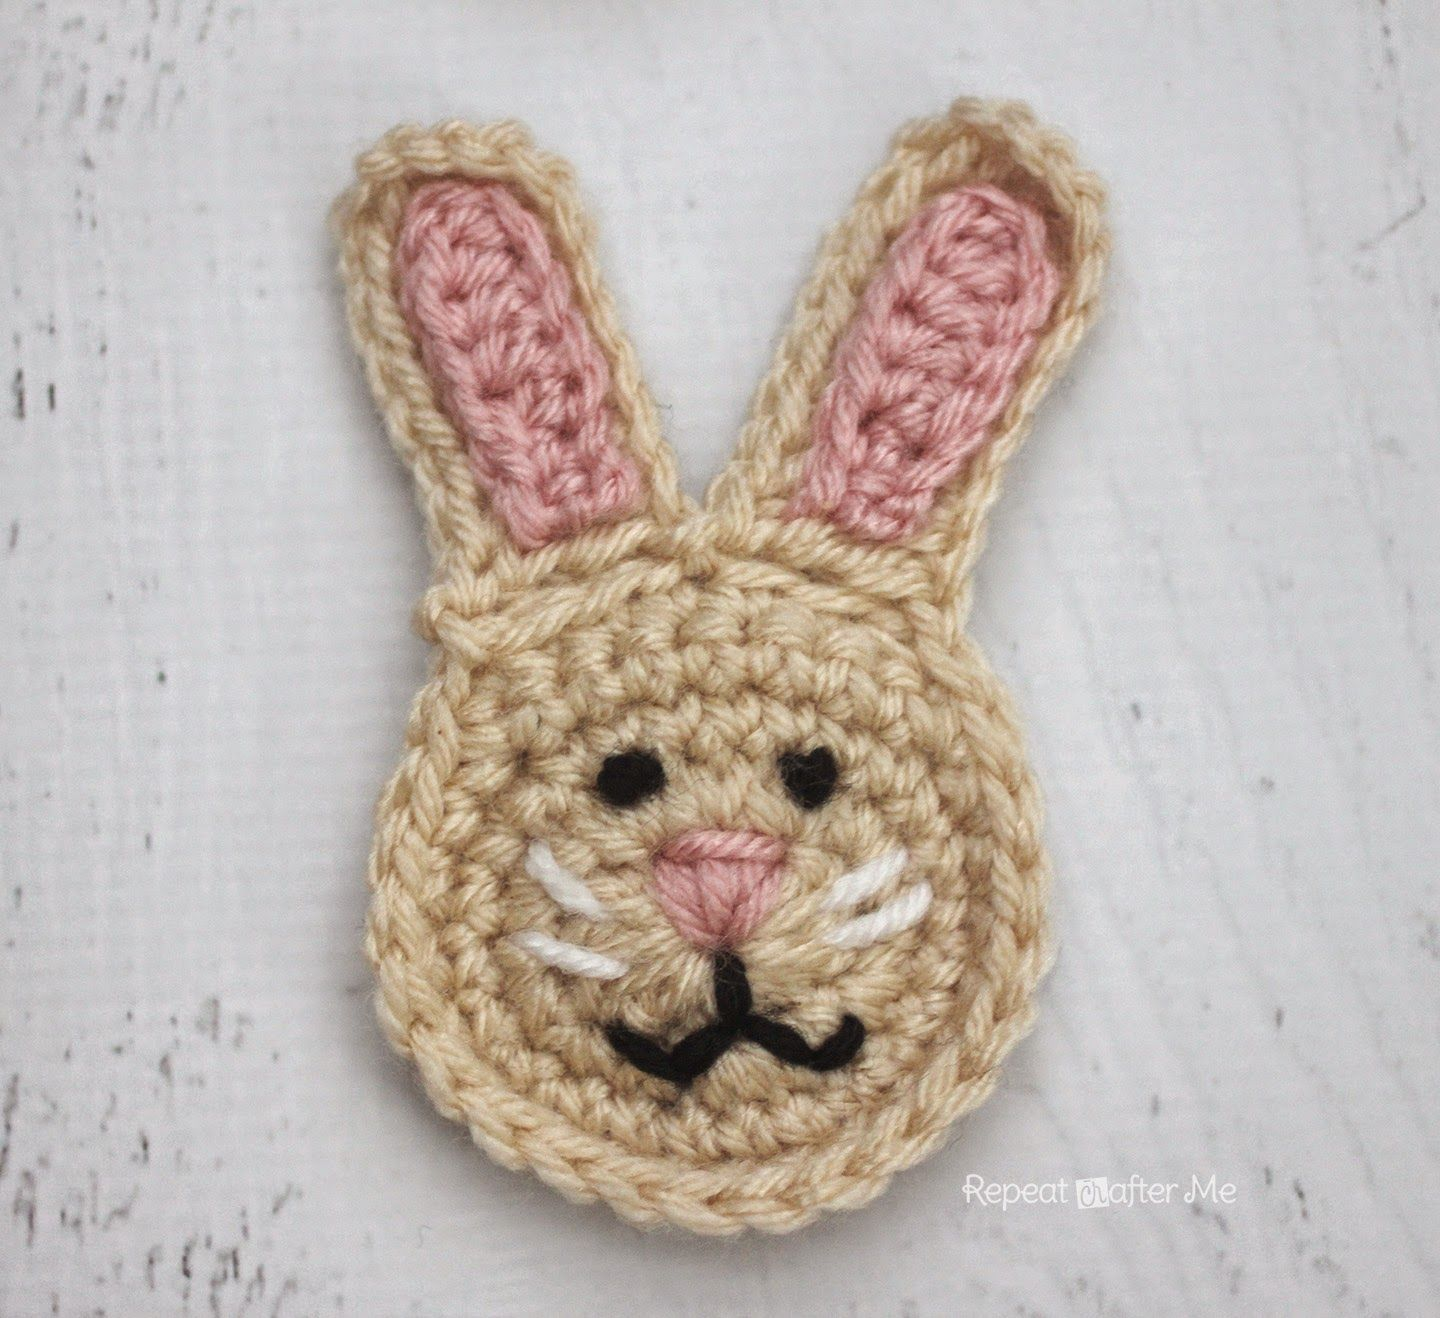 Repeat Crafter Me: R is for Rabbit: Crochet Rabbit Applique - free pattern